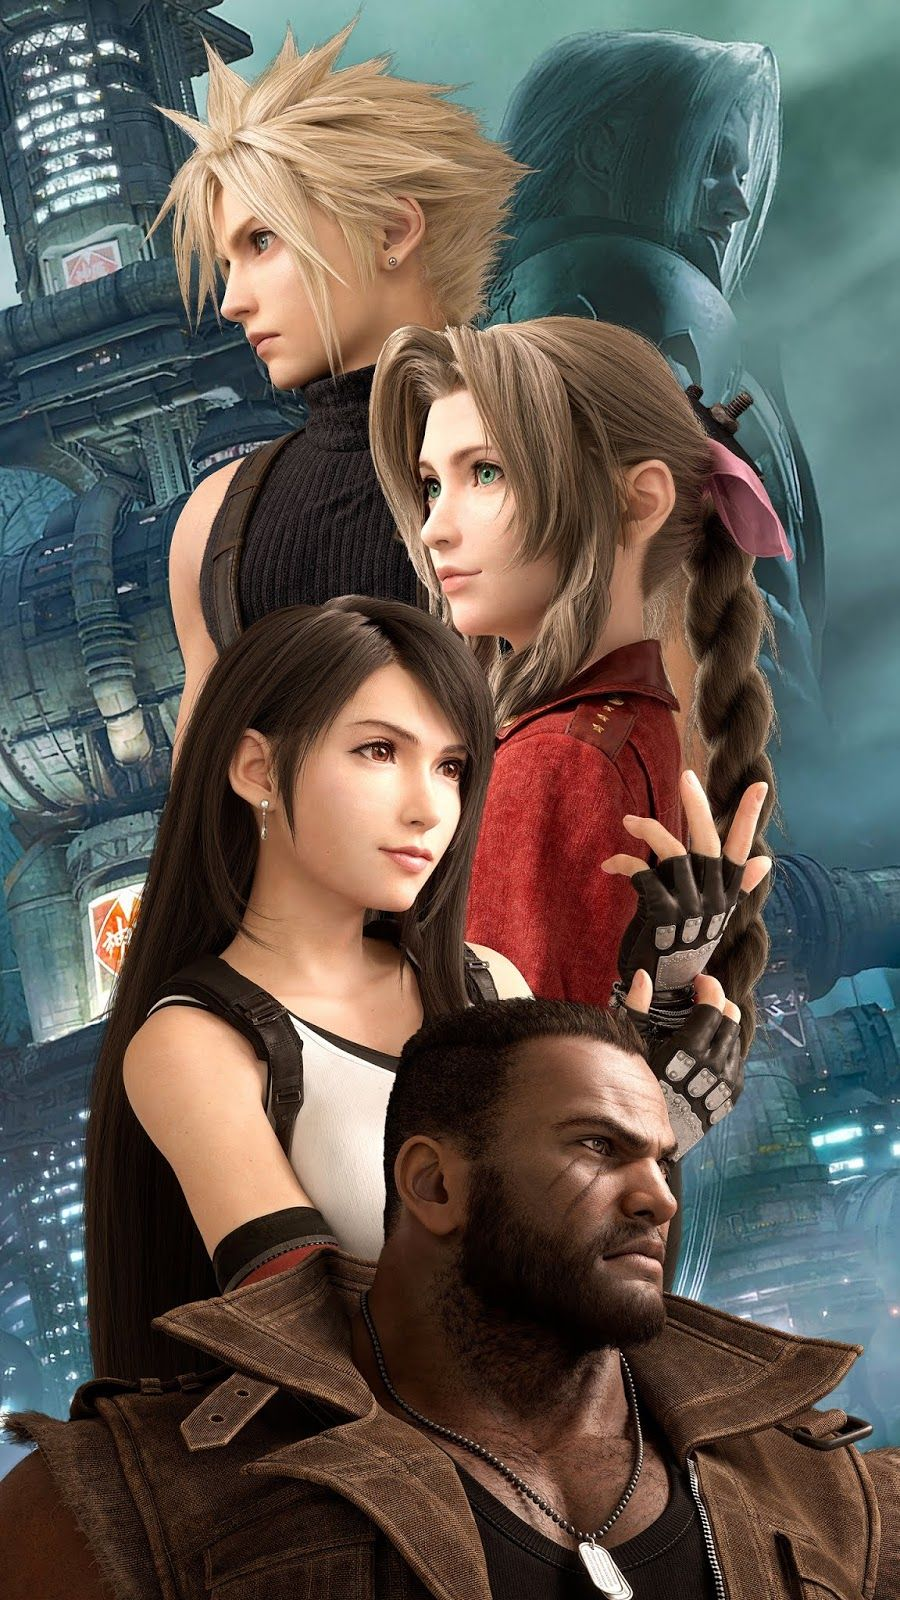 Final Fantasy 7 Remake Wallpaper Iphone Android Background Followme Final Fantasy Vii Cloud Final Fantasy Cloud Final Fantasy X